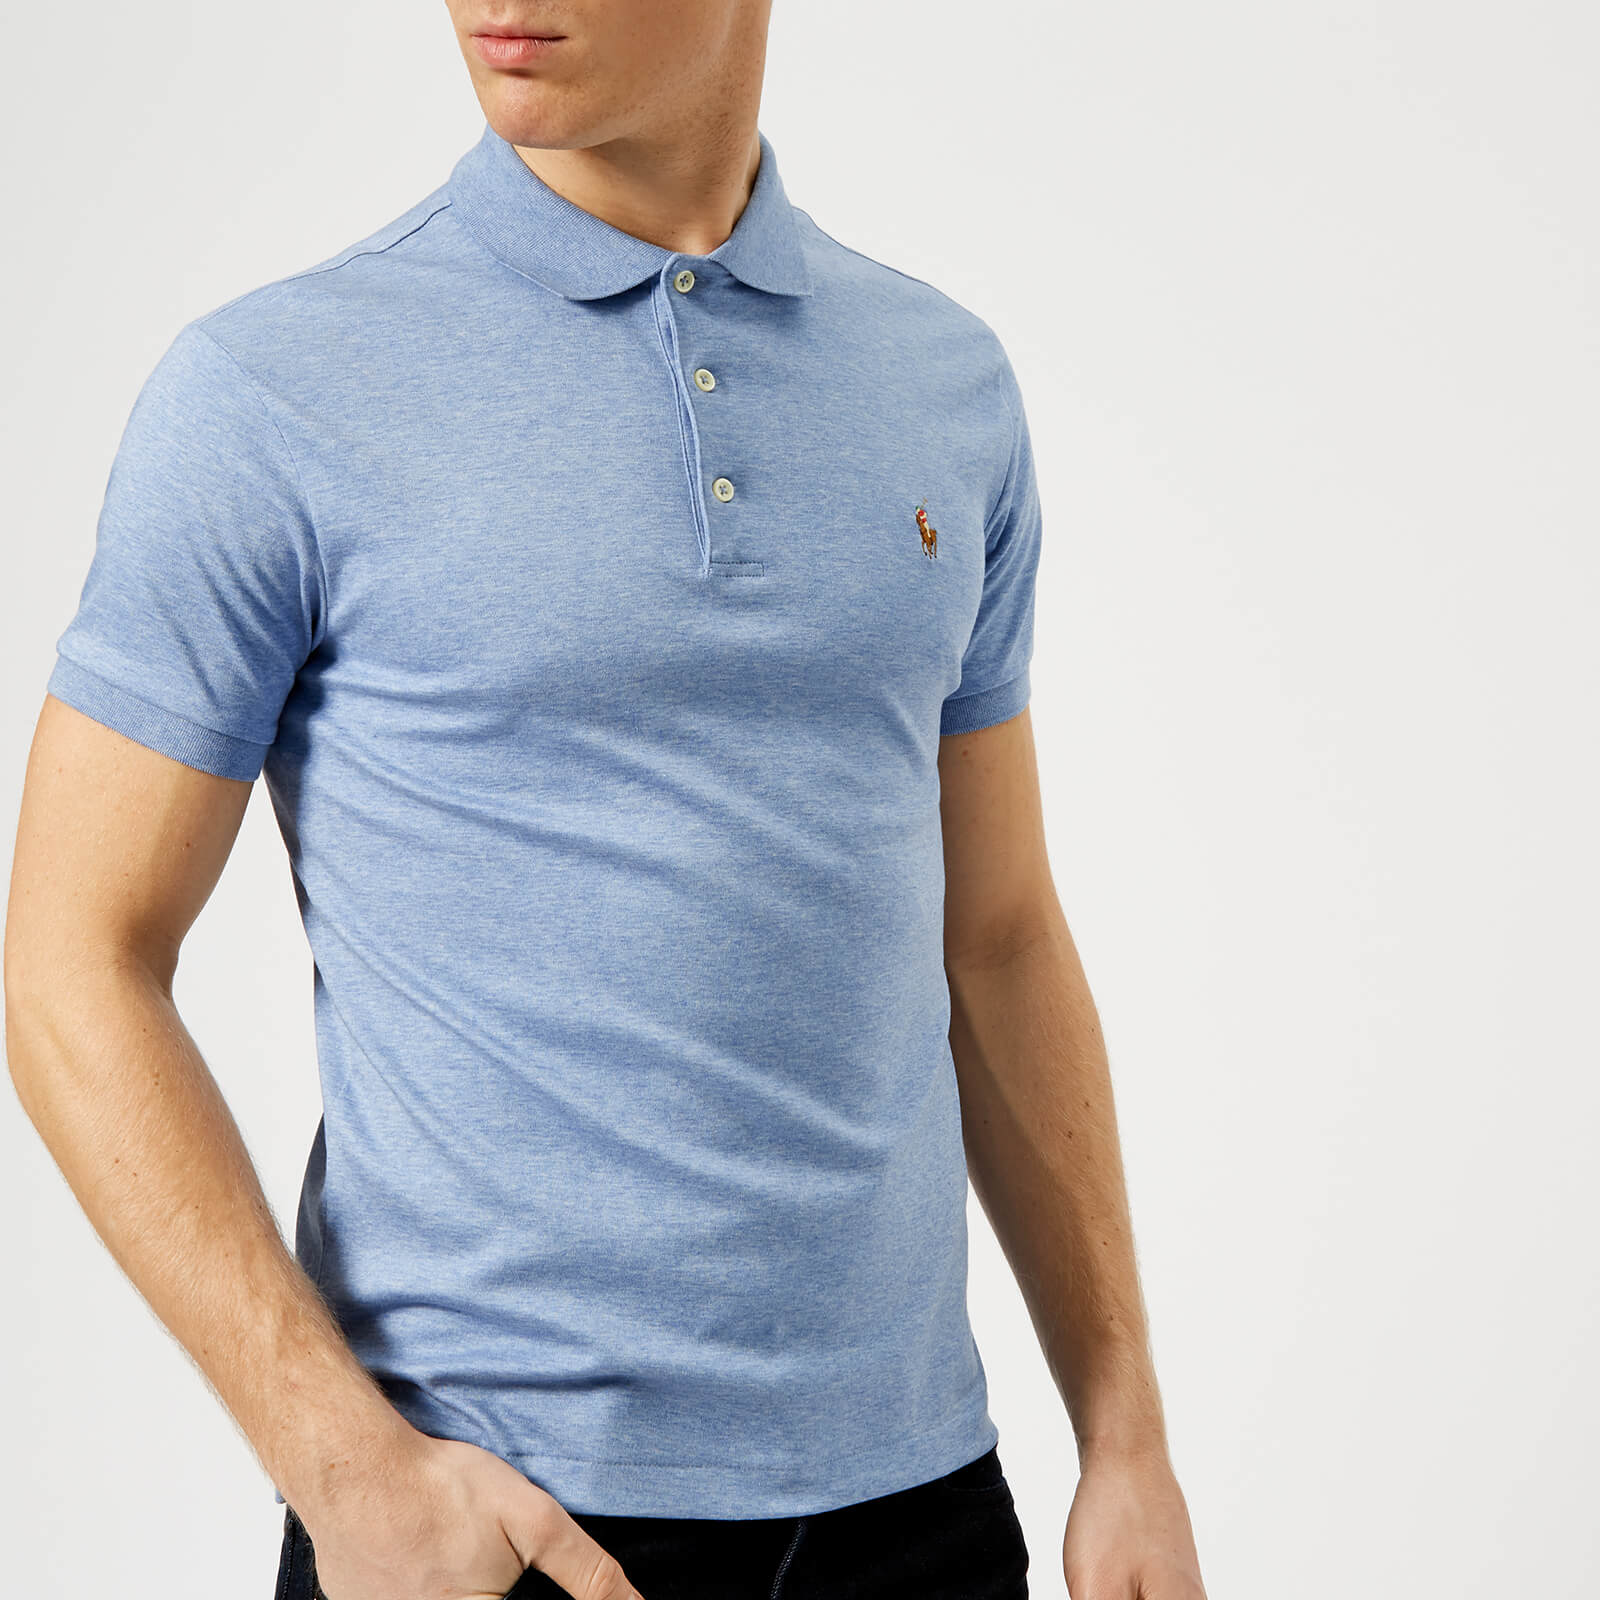 afd56a44 Polo Ralph Lauren Men's Pima Polo Shirt - Blue Heather - Free UK Delivery  over £50